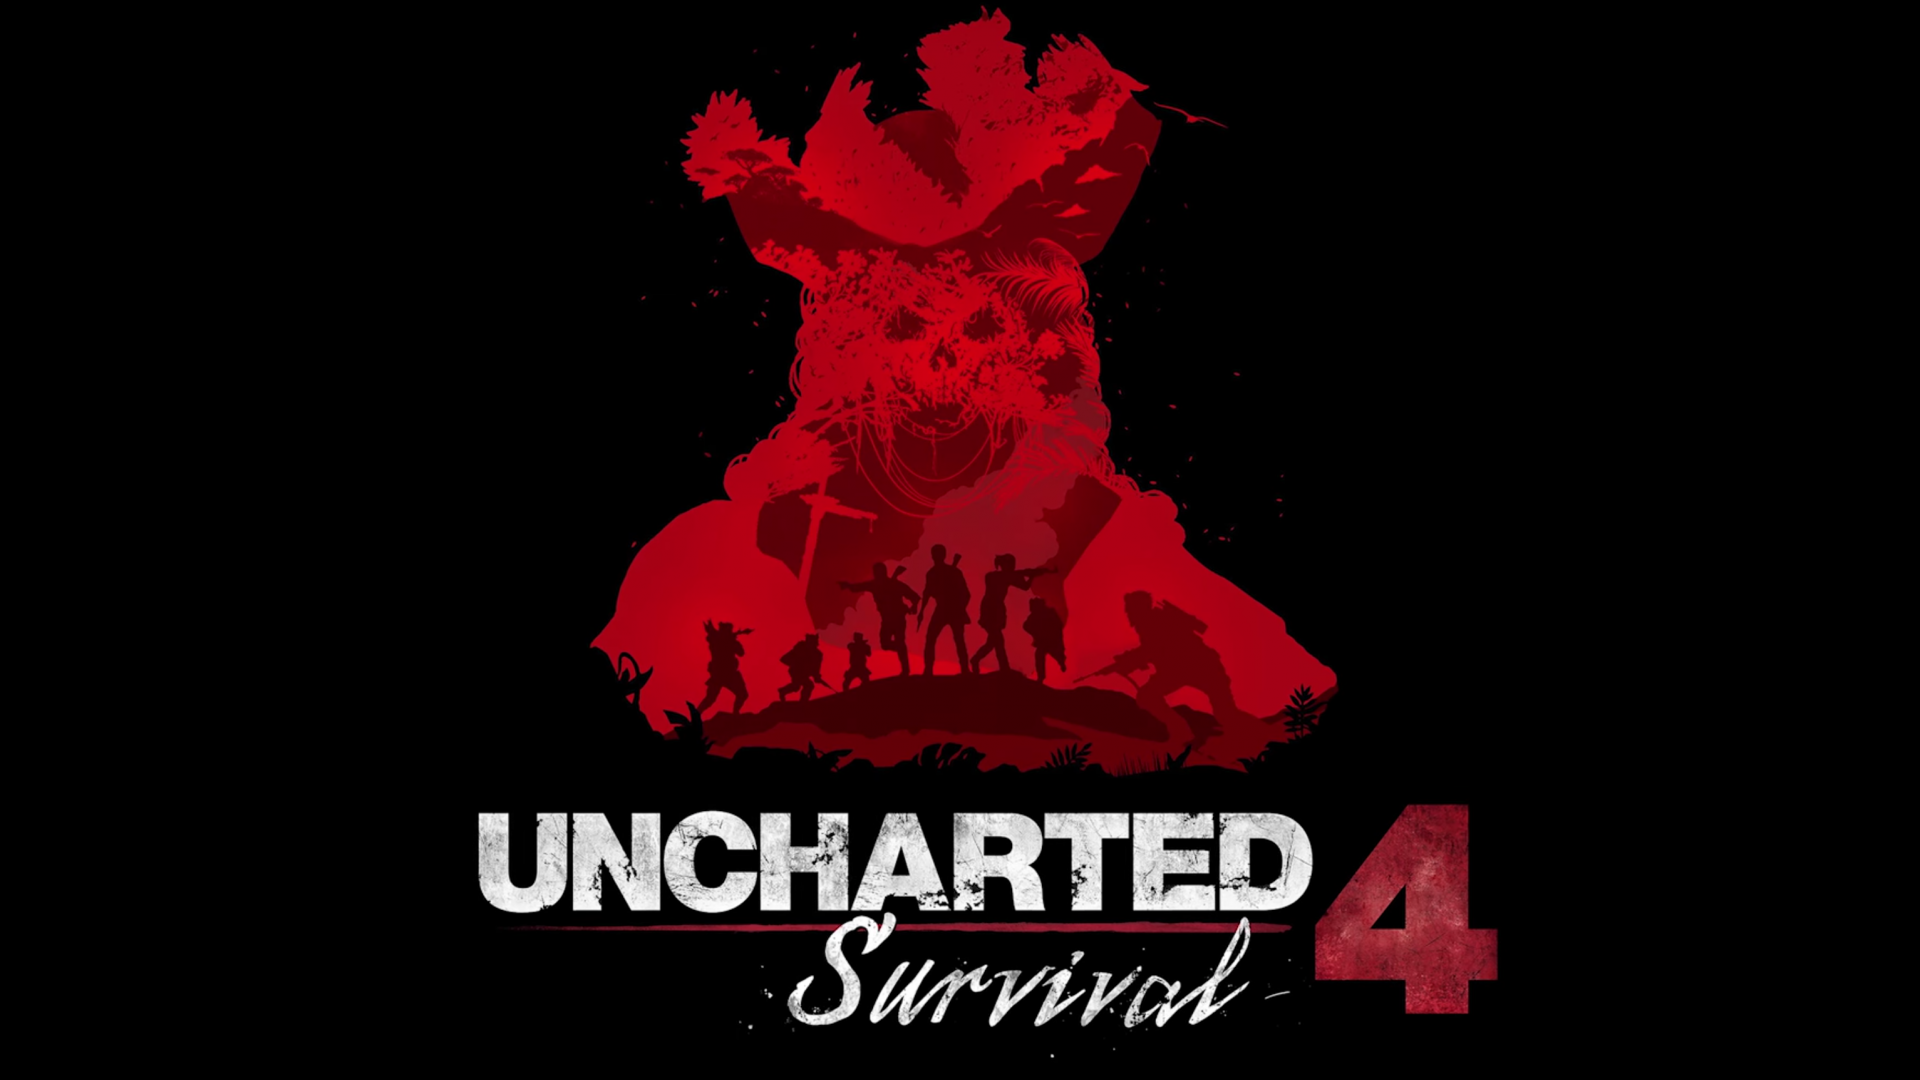 Uncharted 4 Free Co Op Dlc Revealed Survival Mode Uncharted Survival Mode Survival Skills